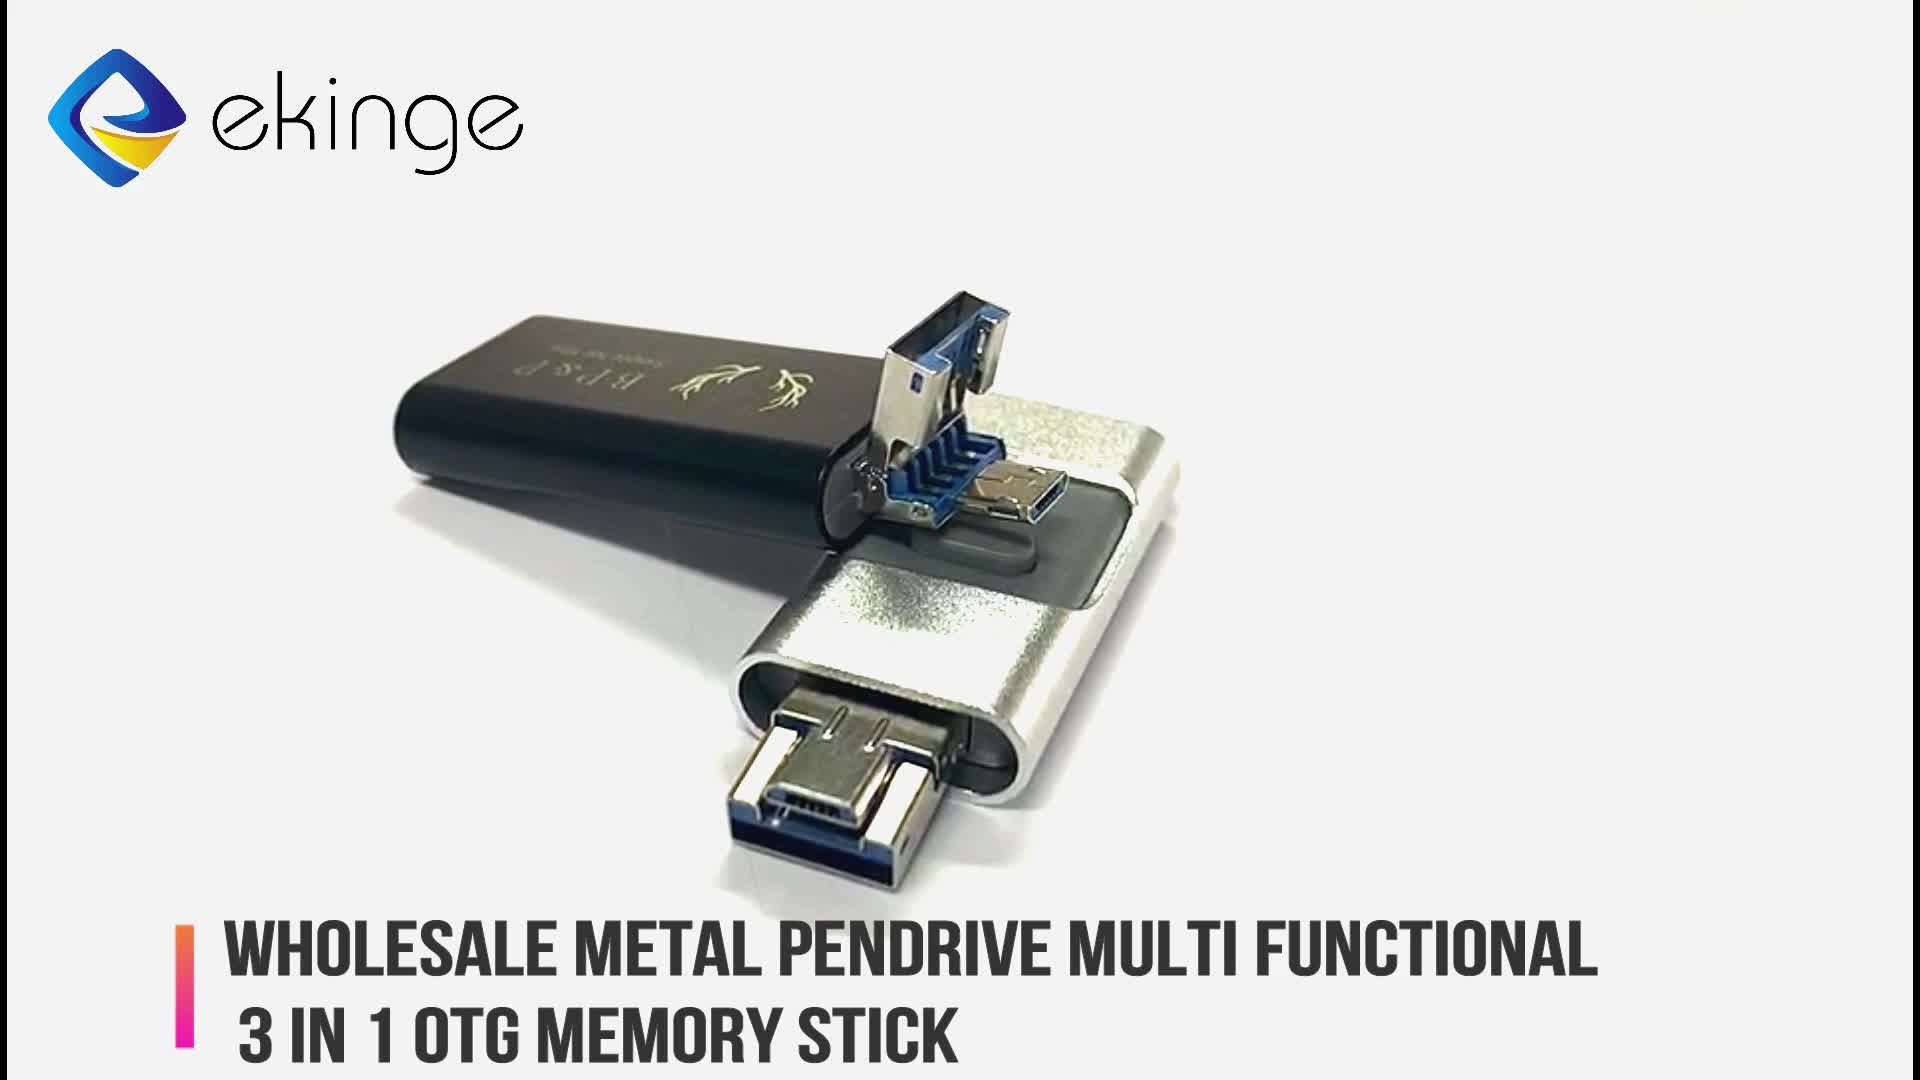 Wholesale metal pendrive Multi Functional 3 in 1 otg usb flash drive 8GB 16GB 32GB 64GB memory stick for IOS PC Android Devices